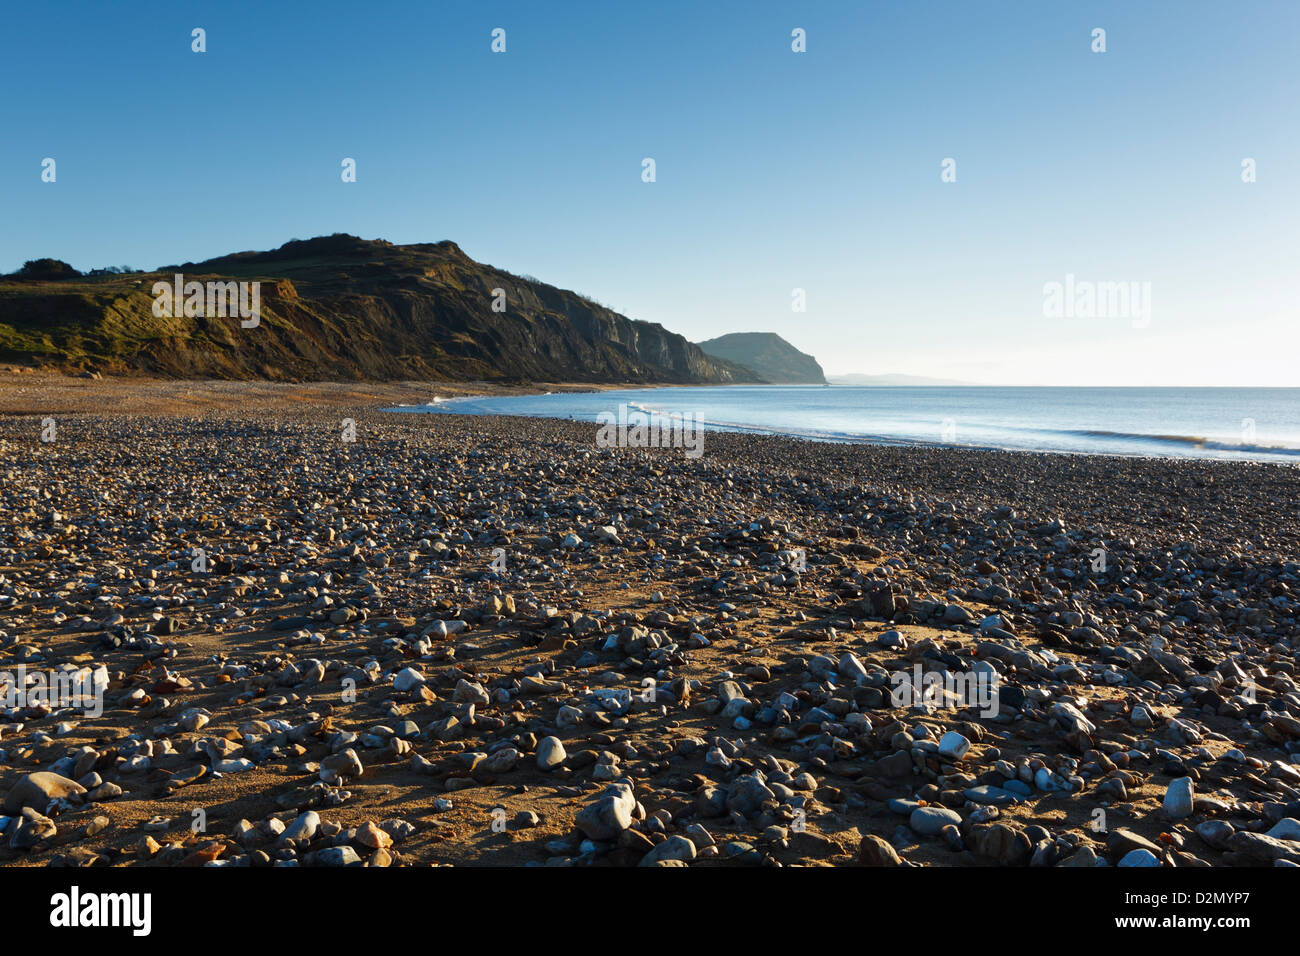 Fossil Rich cliffs at Charmouth Beach. Jurassic Coast World Heritage Site. Dorset. England. UK. Stock Photo